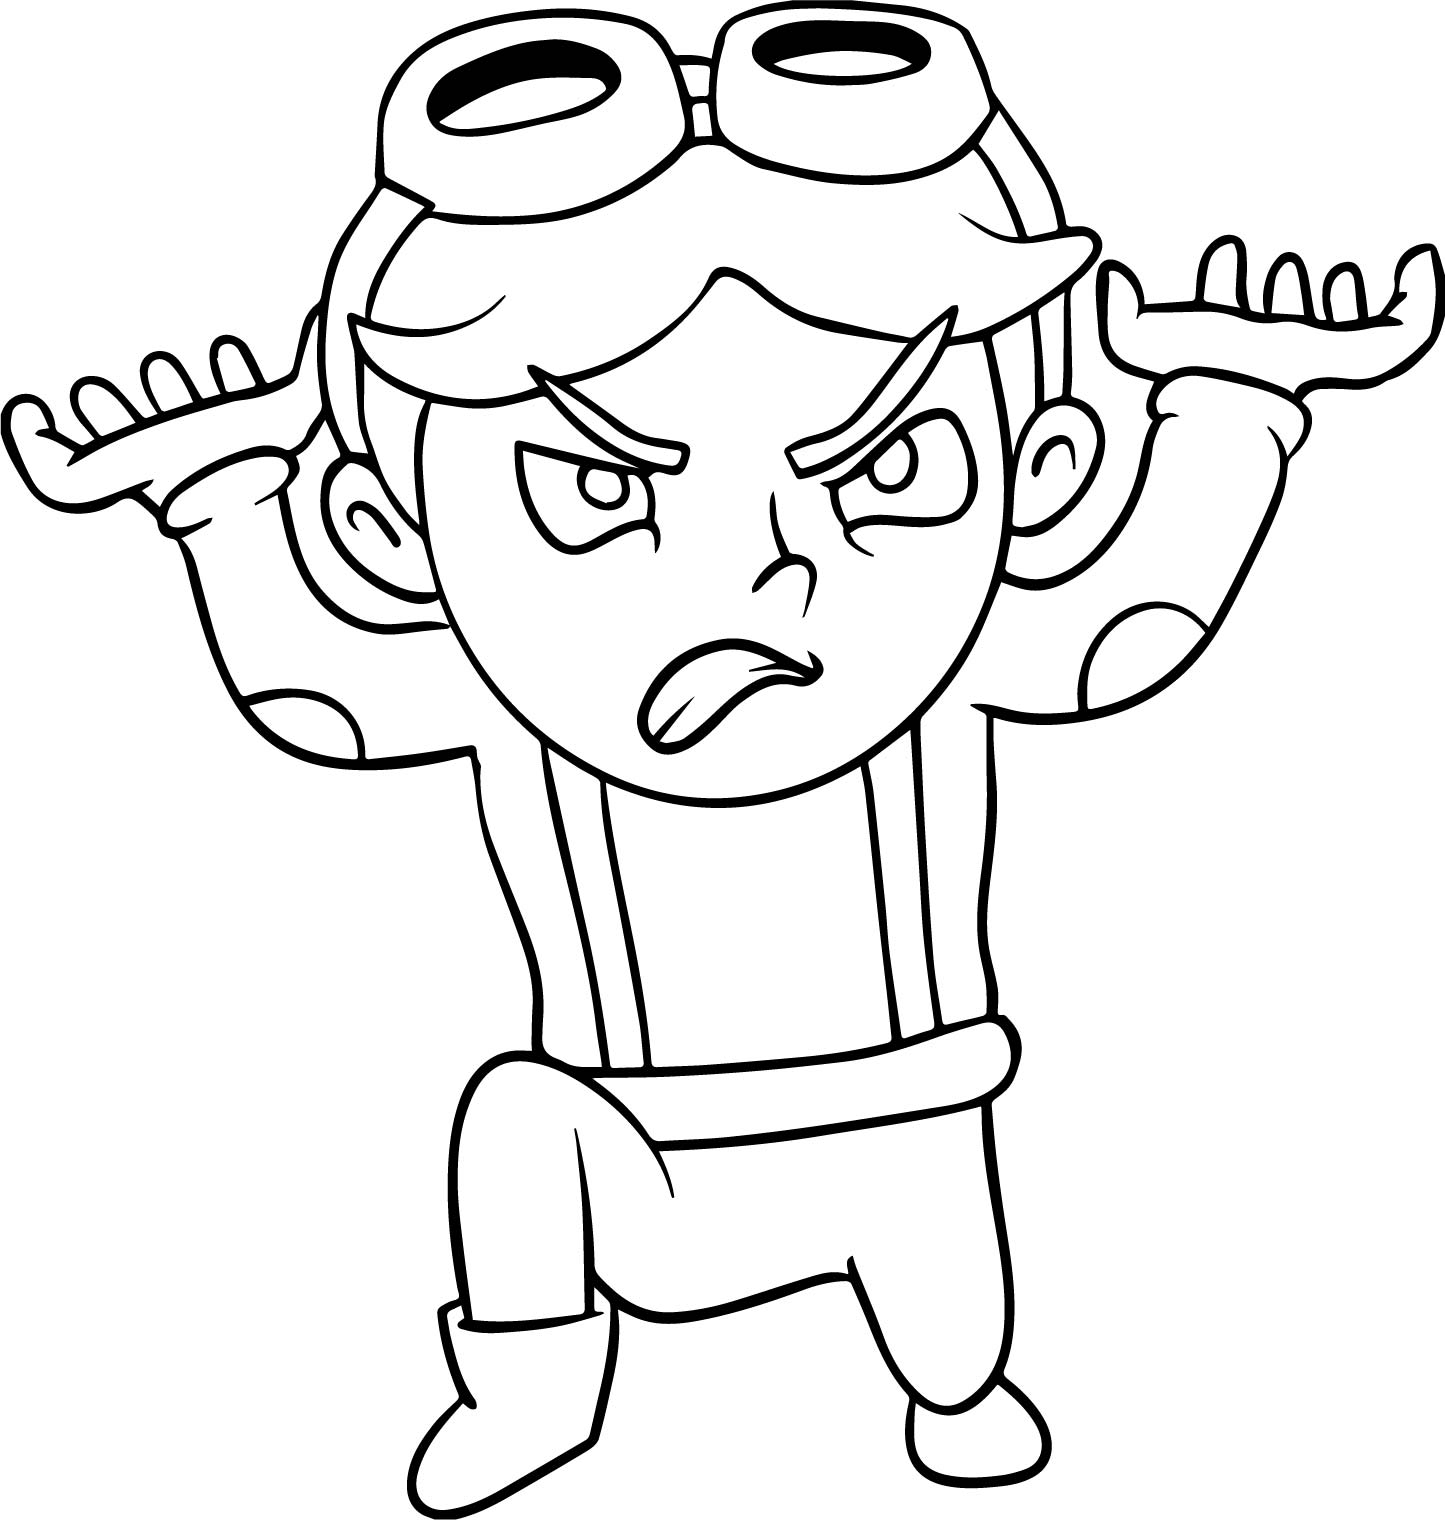 child superhero coloring pages - photo#12